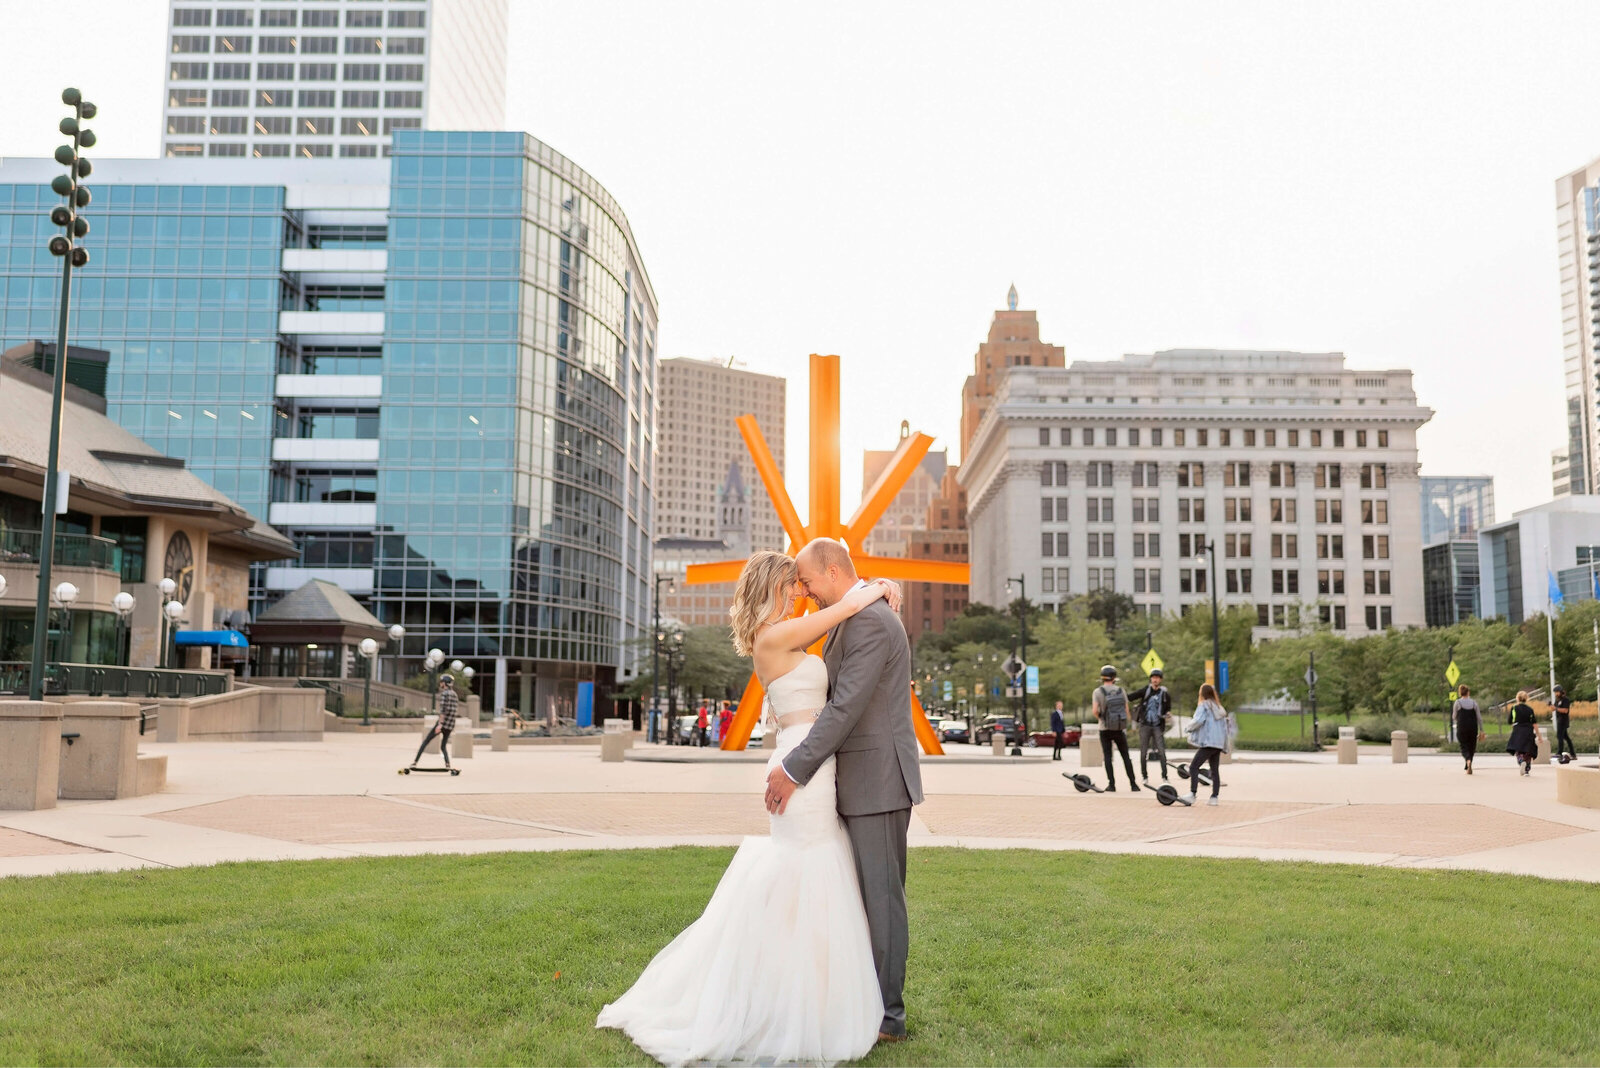 Wedding-Photographer-Discovery-World-Milwaukee-Wisconsin-75